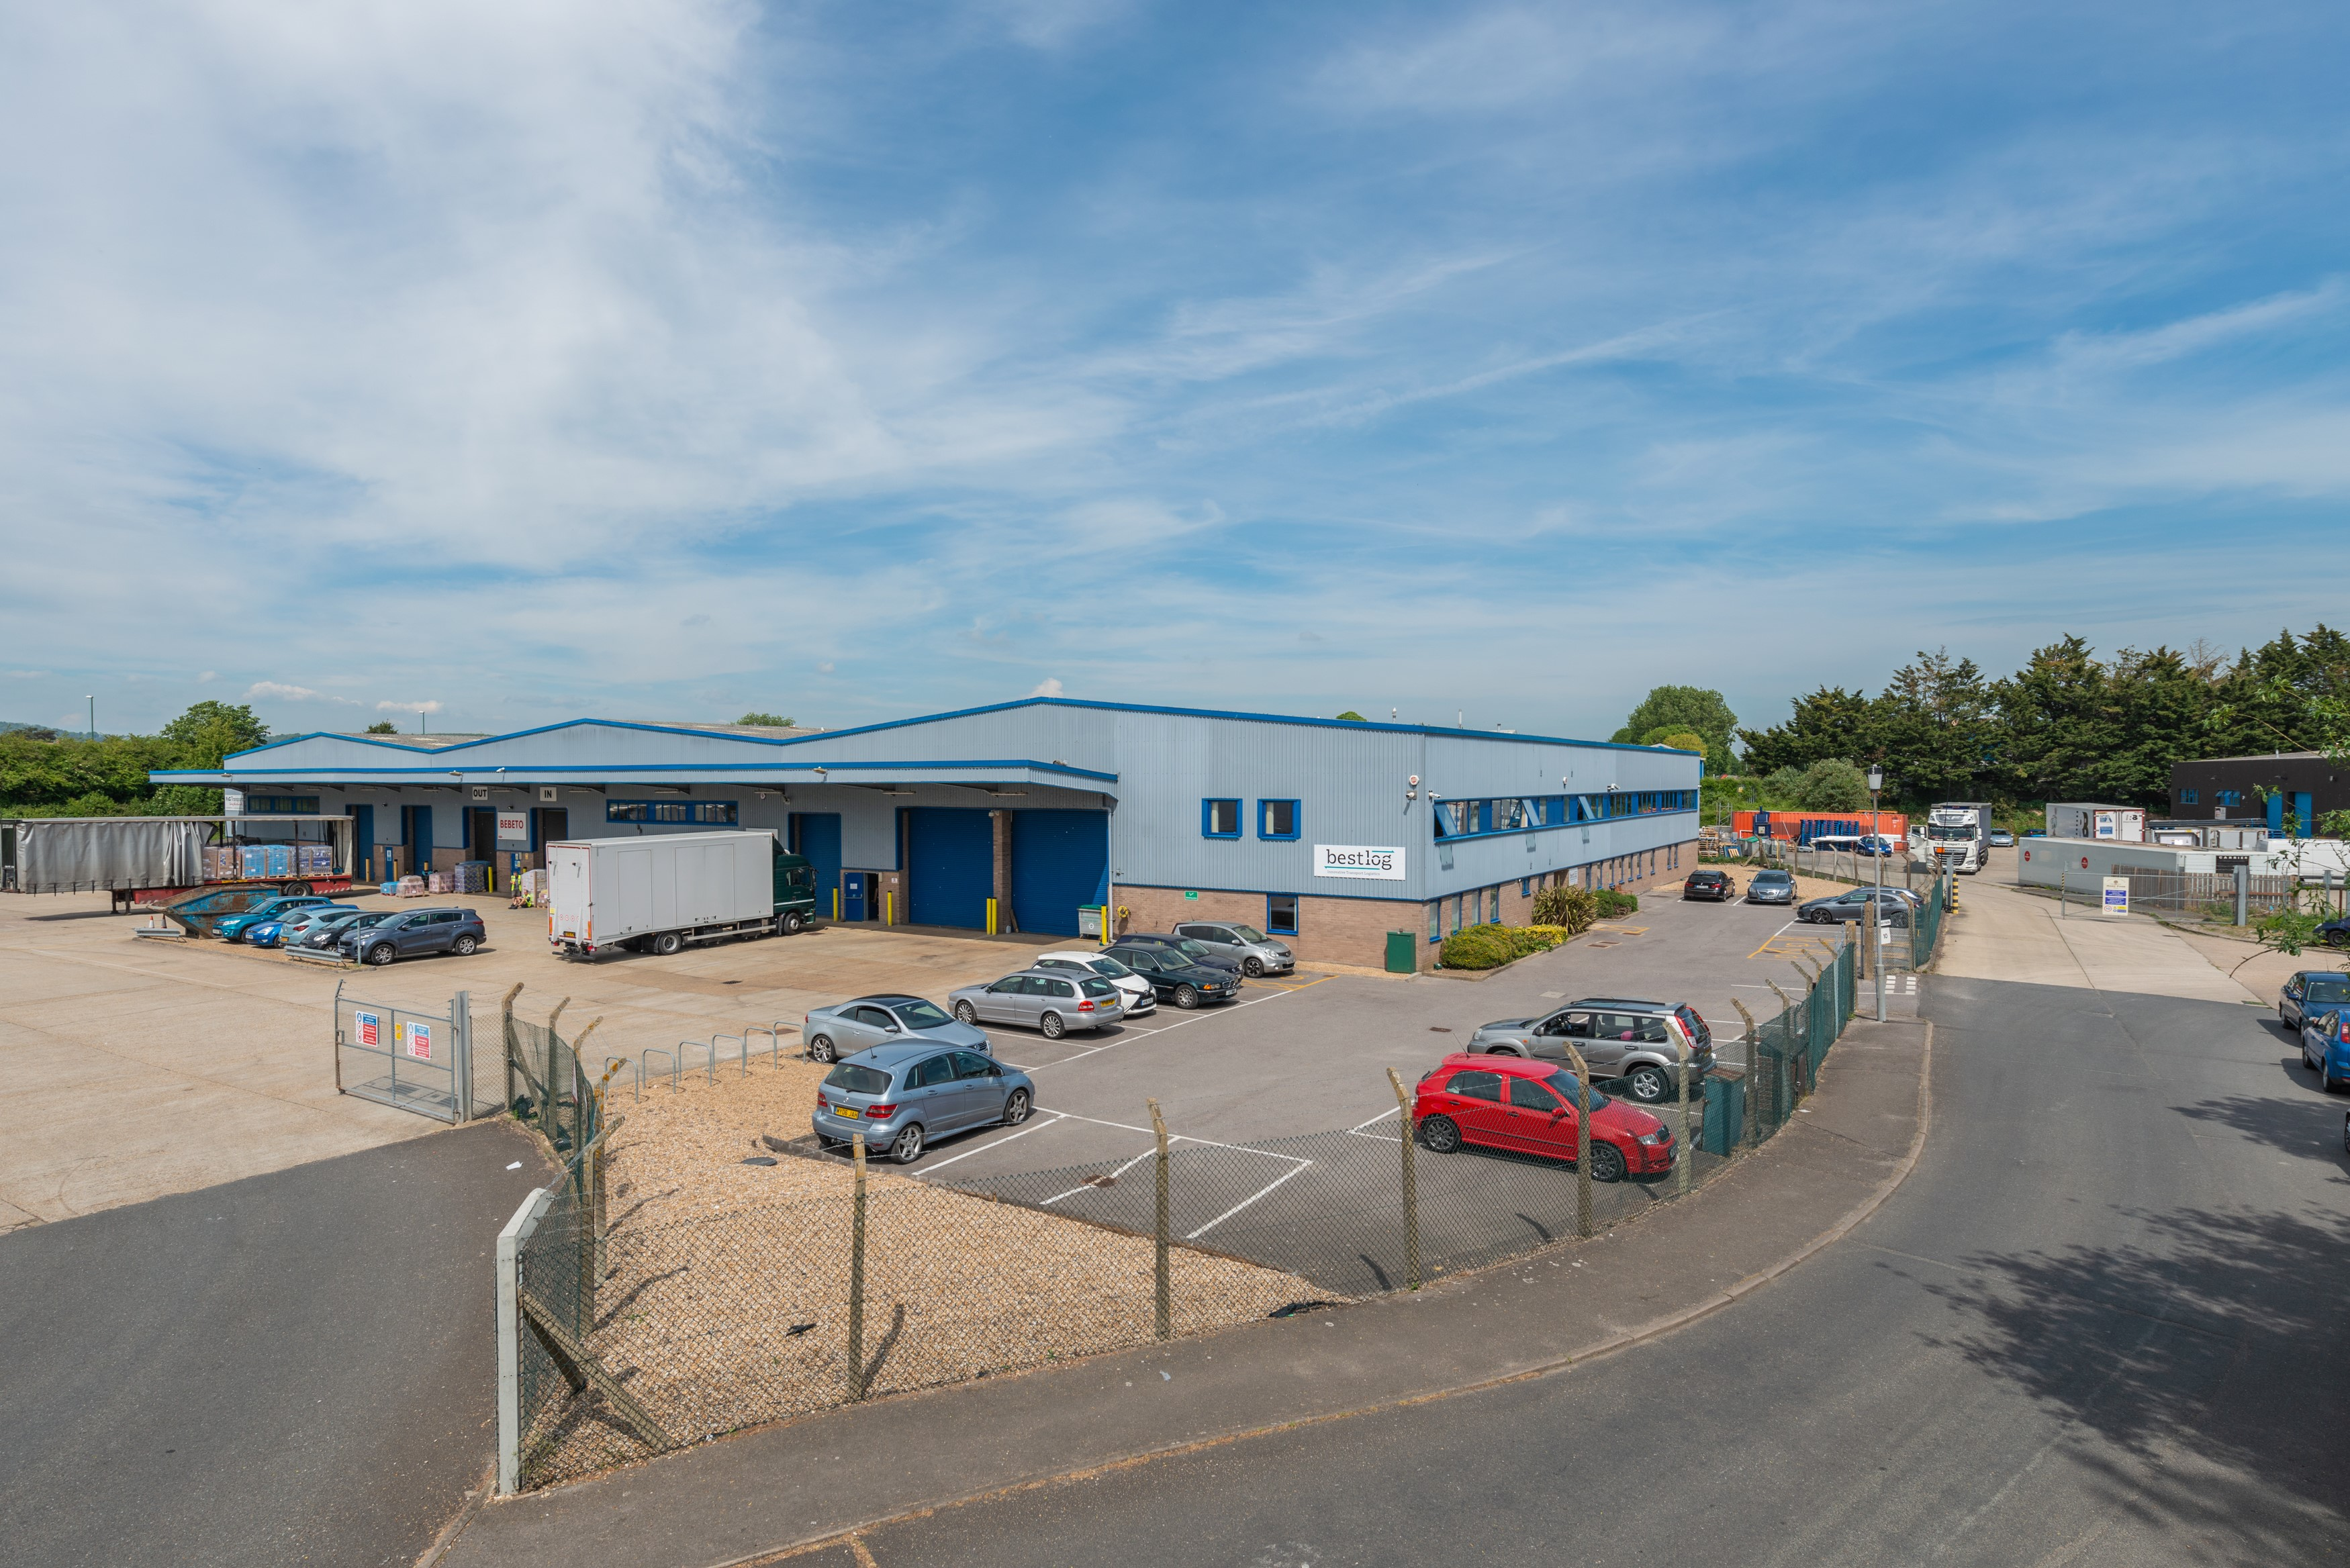 Image of Unit 3, Rutland Way, Chichester, West Sussex, PO19 7RT